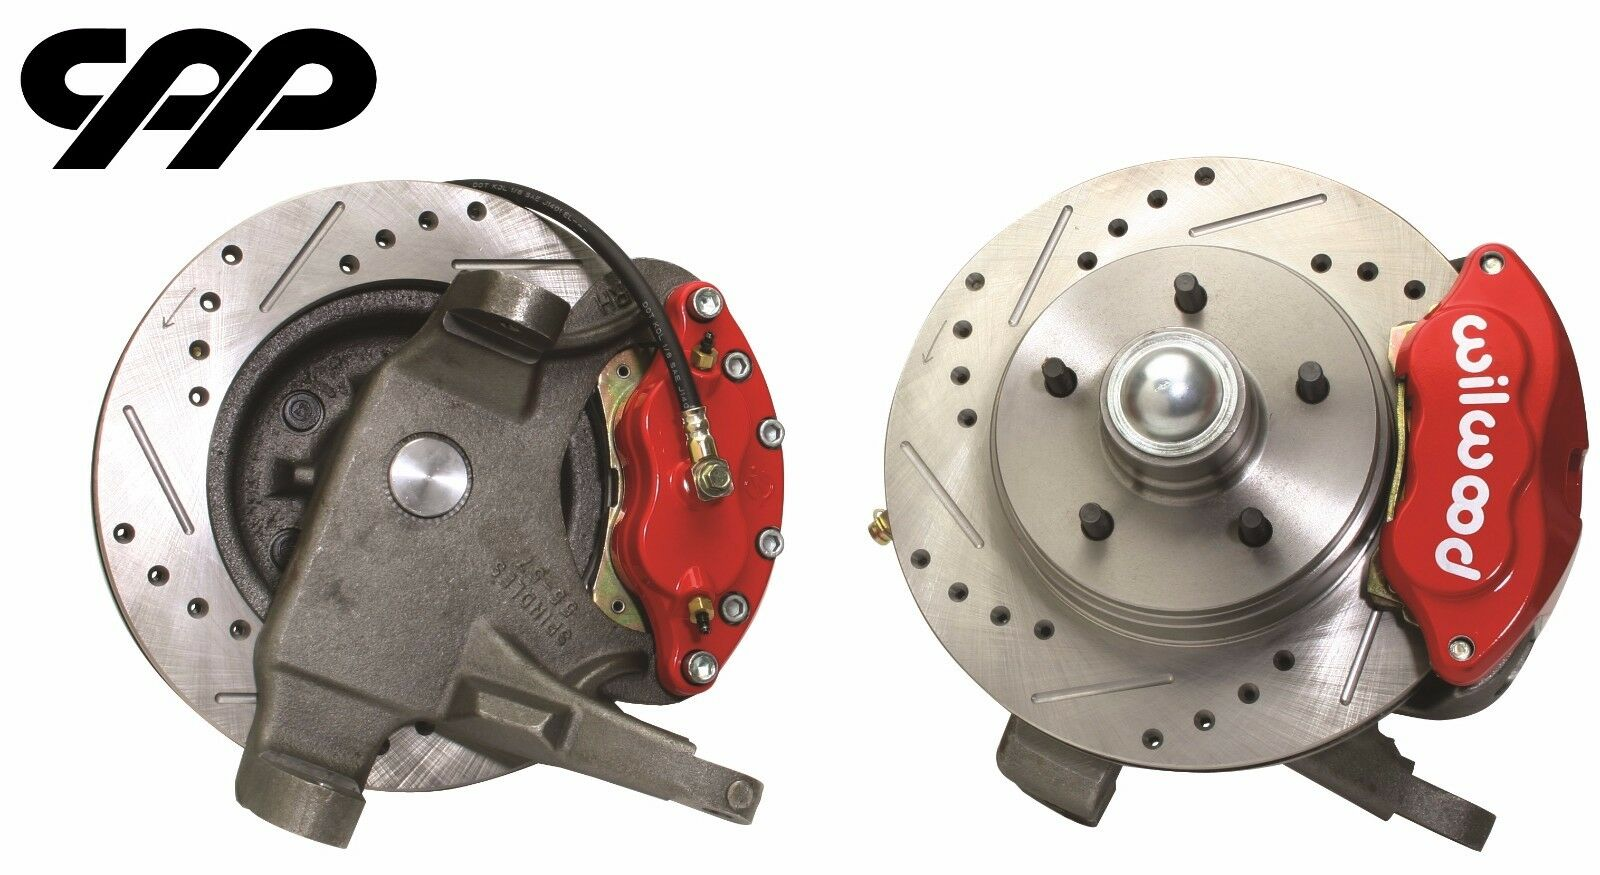 55 56 57 Chevy Belair Wilwood D52 12 Disc Brake Conversion Drop Kitfront Rear6569 Mustangblack Ebay Norton Secured Powered By Verisign